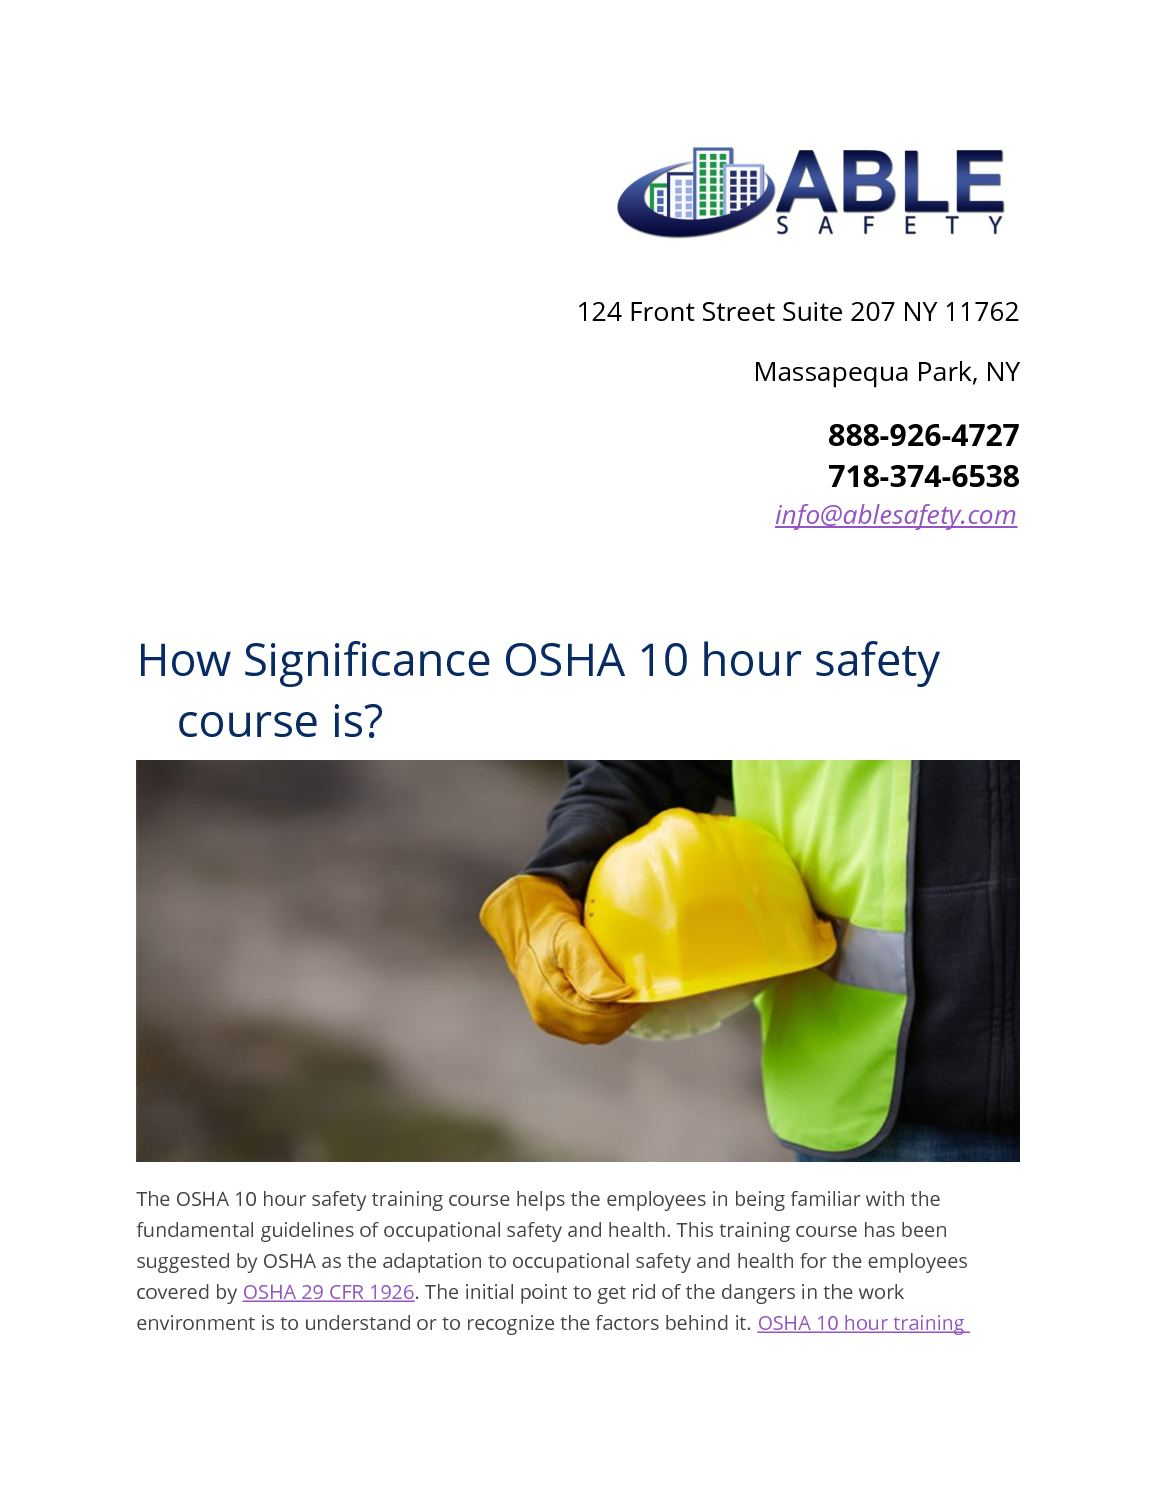 Calaméo - How Significance Osha 10 Hour Safety Course Is